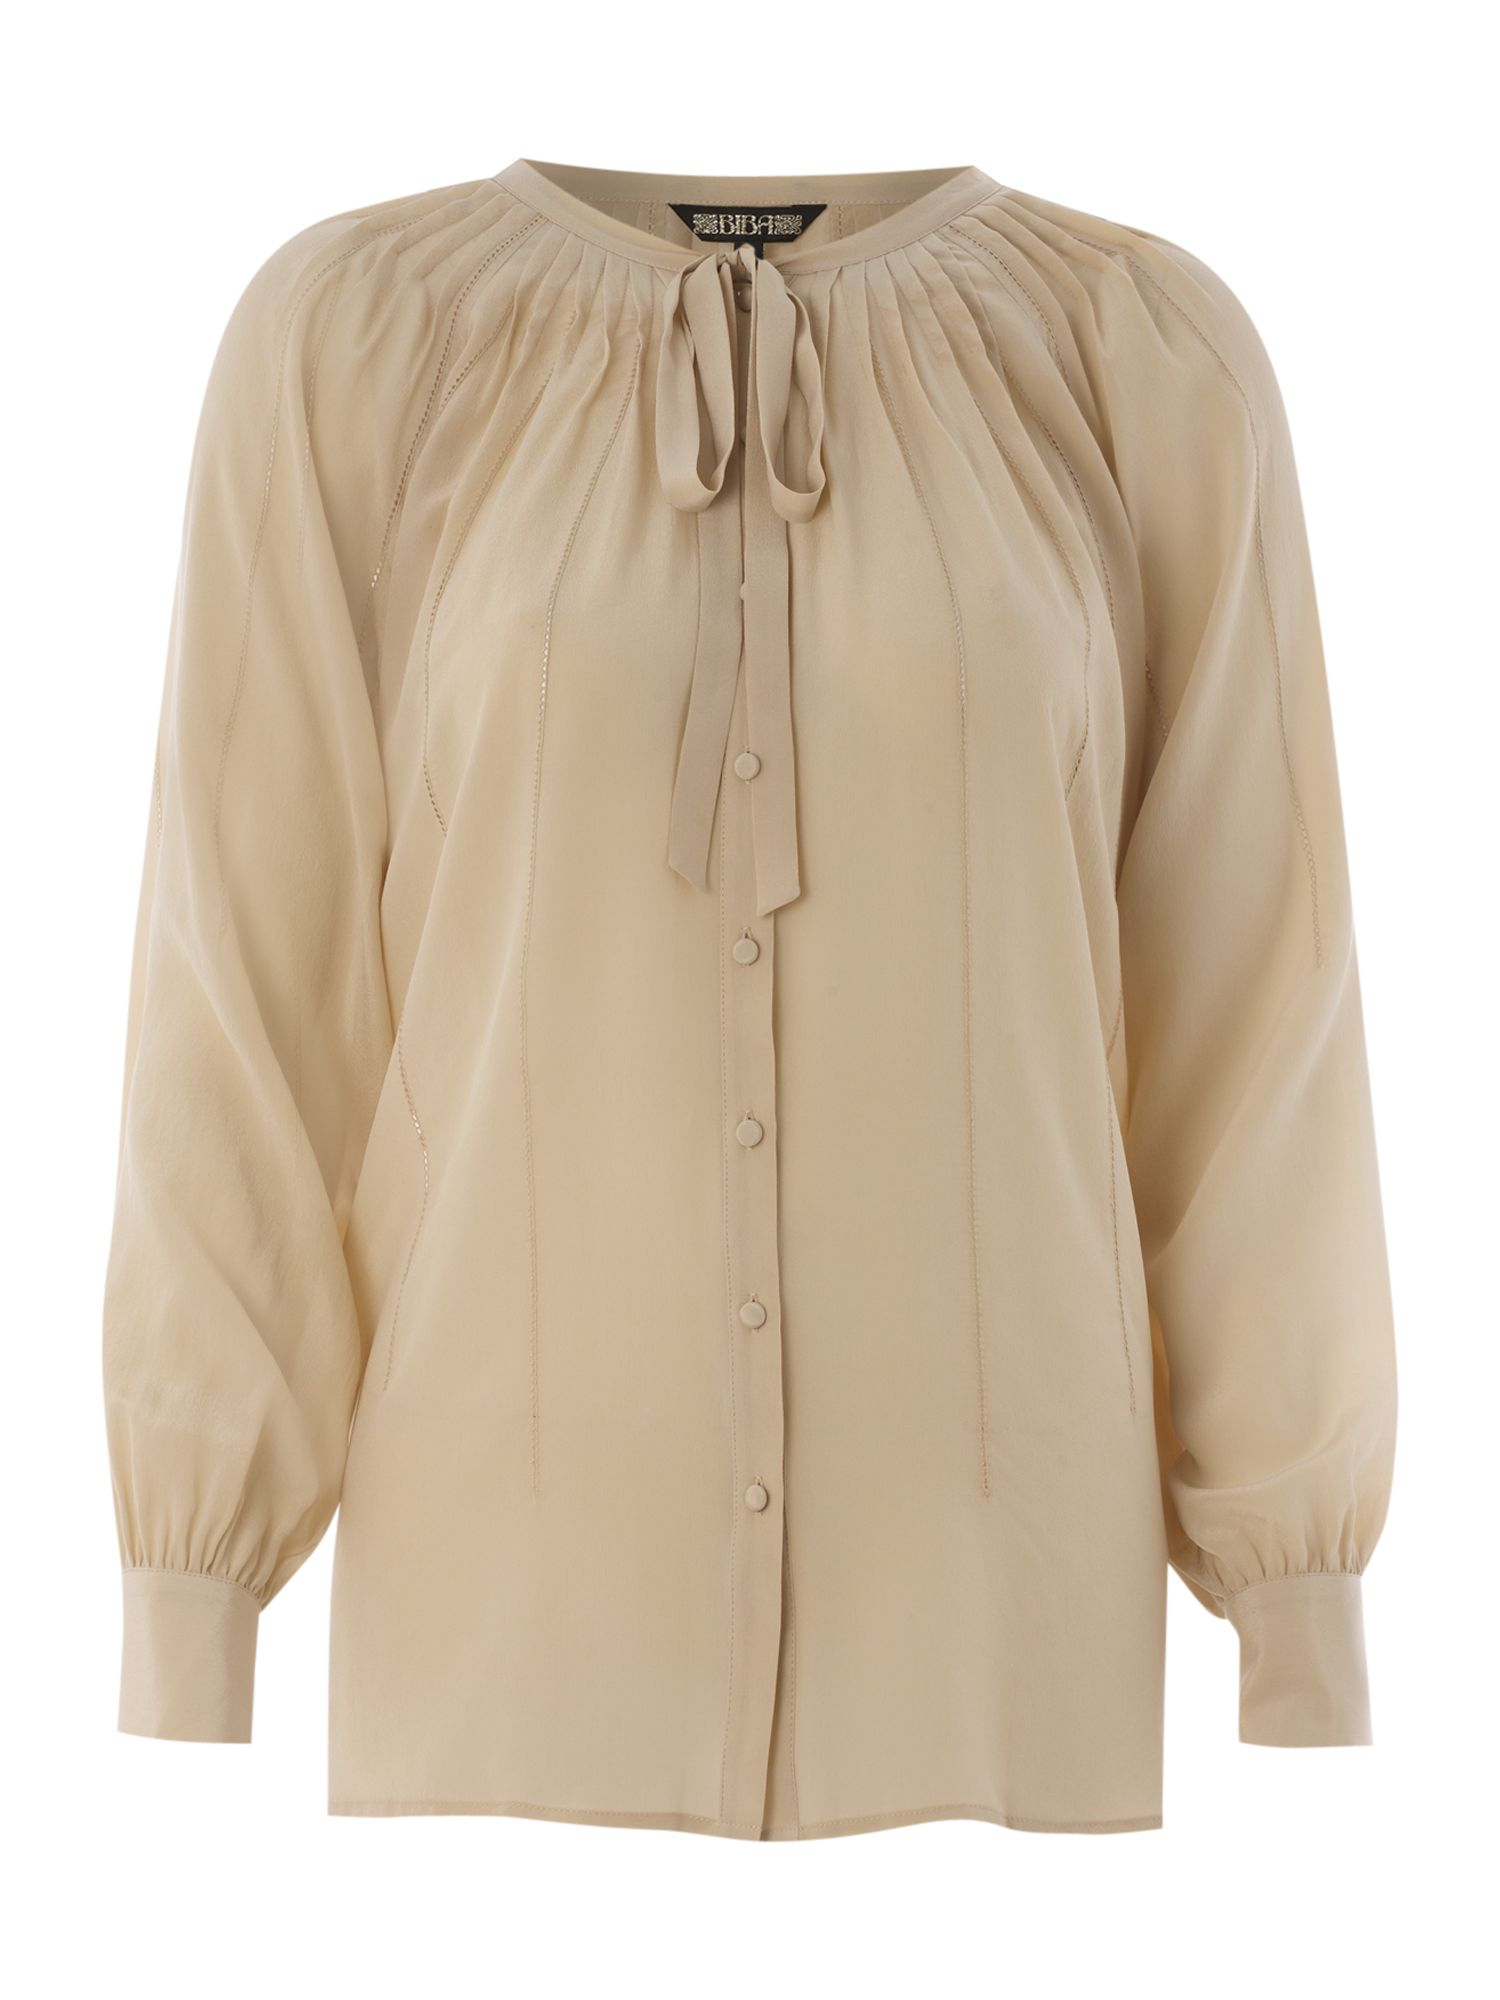 Tie front silk peasant blouse, Buttermilk